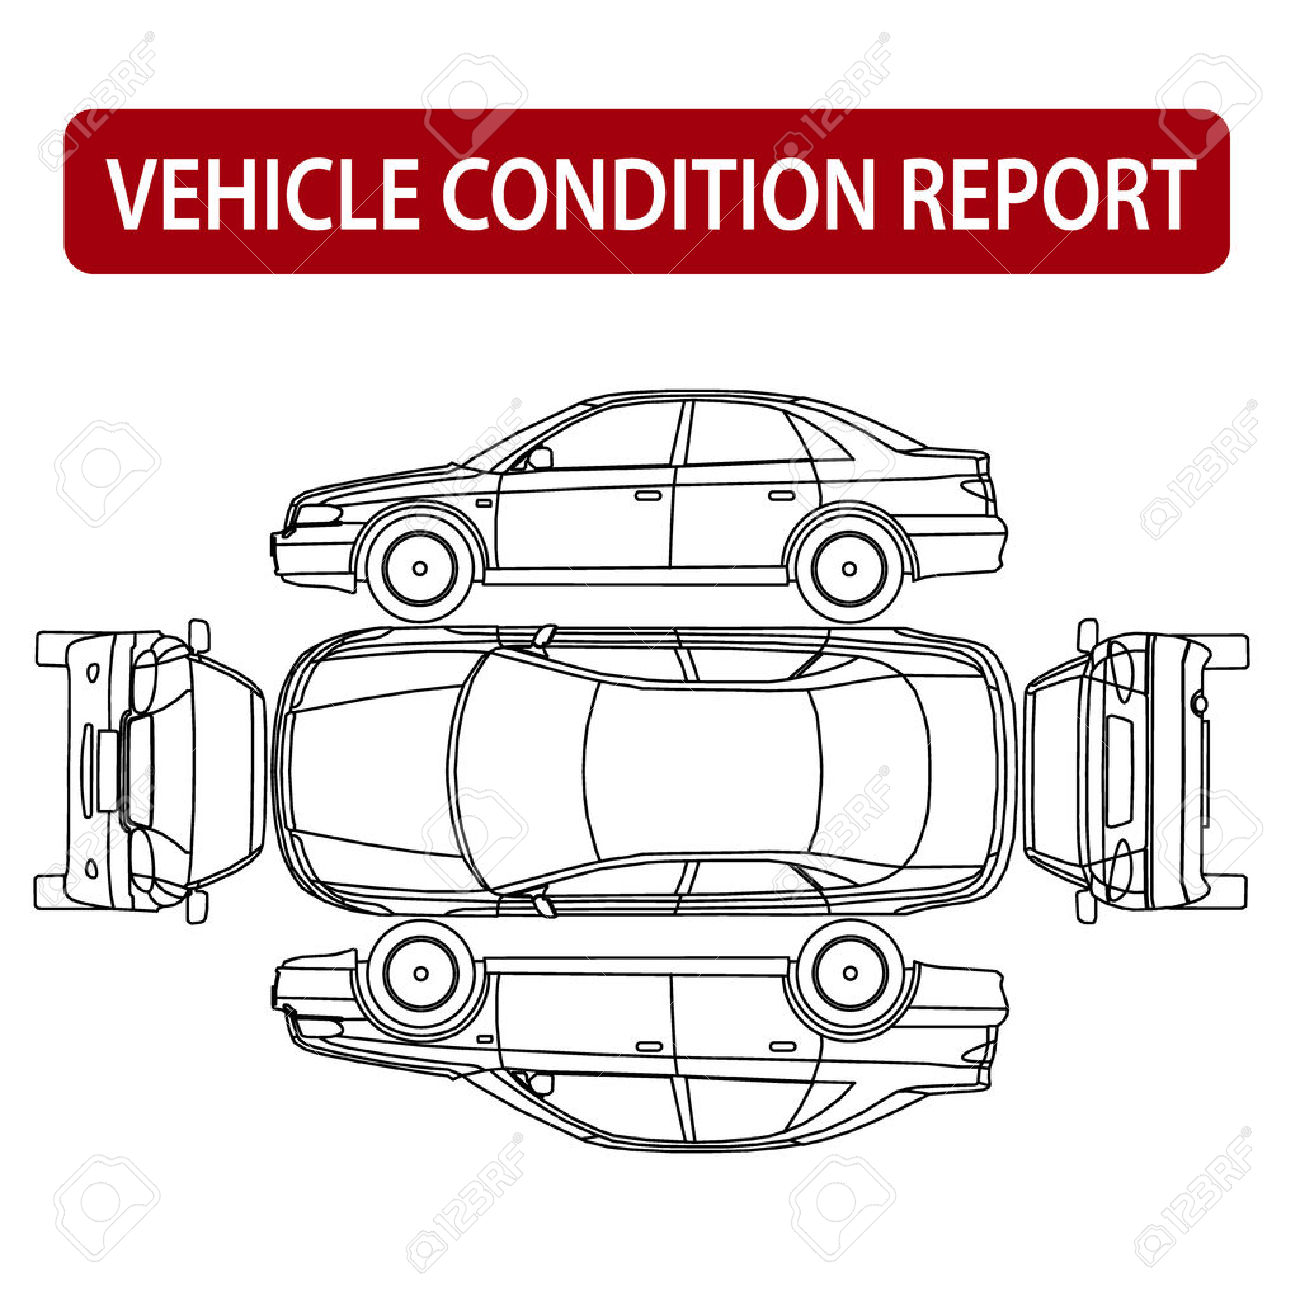 Vehicle Condition Report Car Checklist, Auto Damage Inspection.